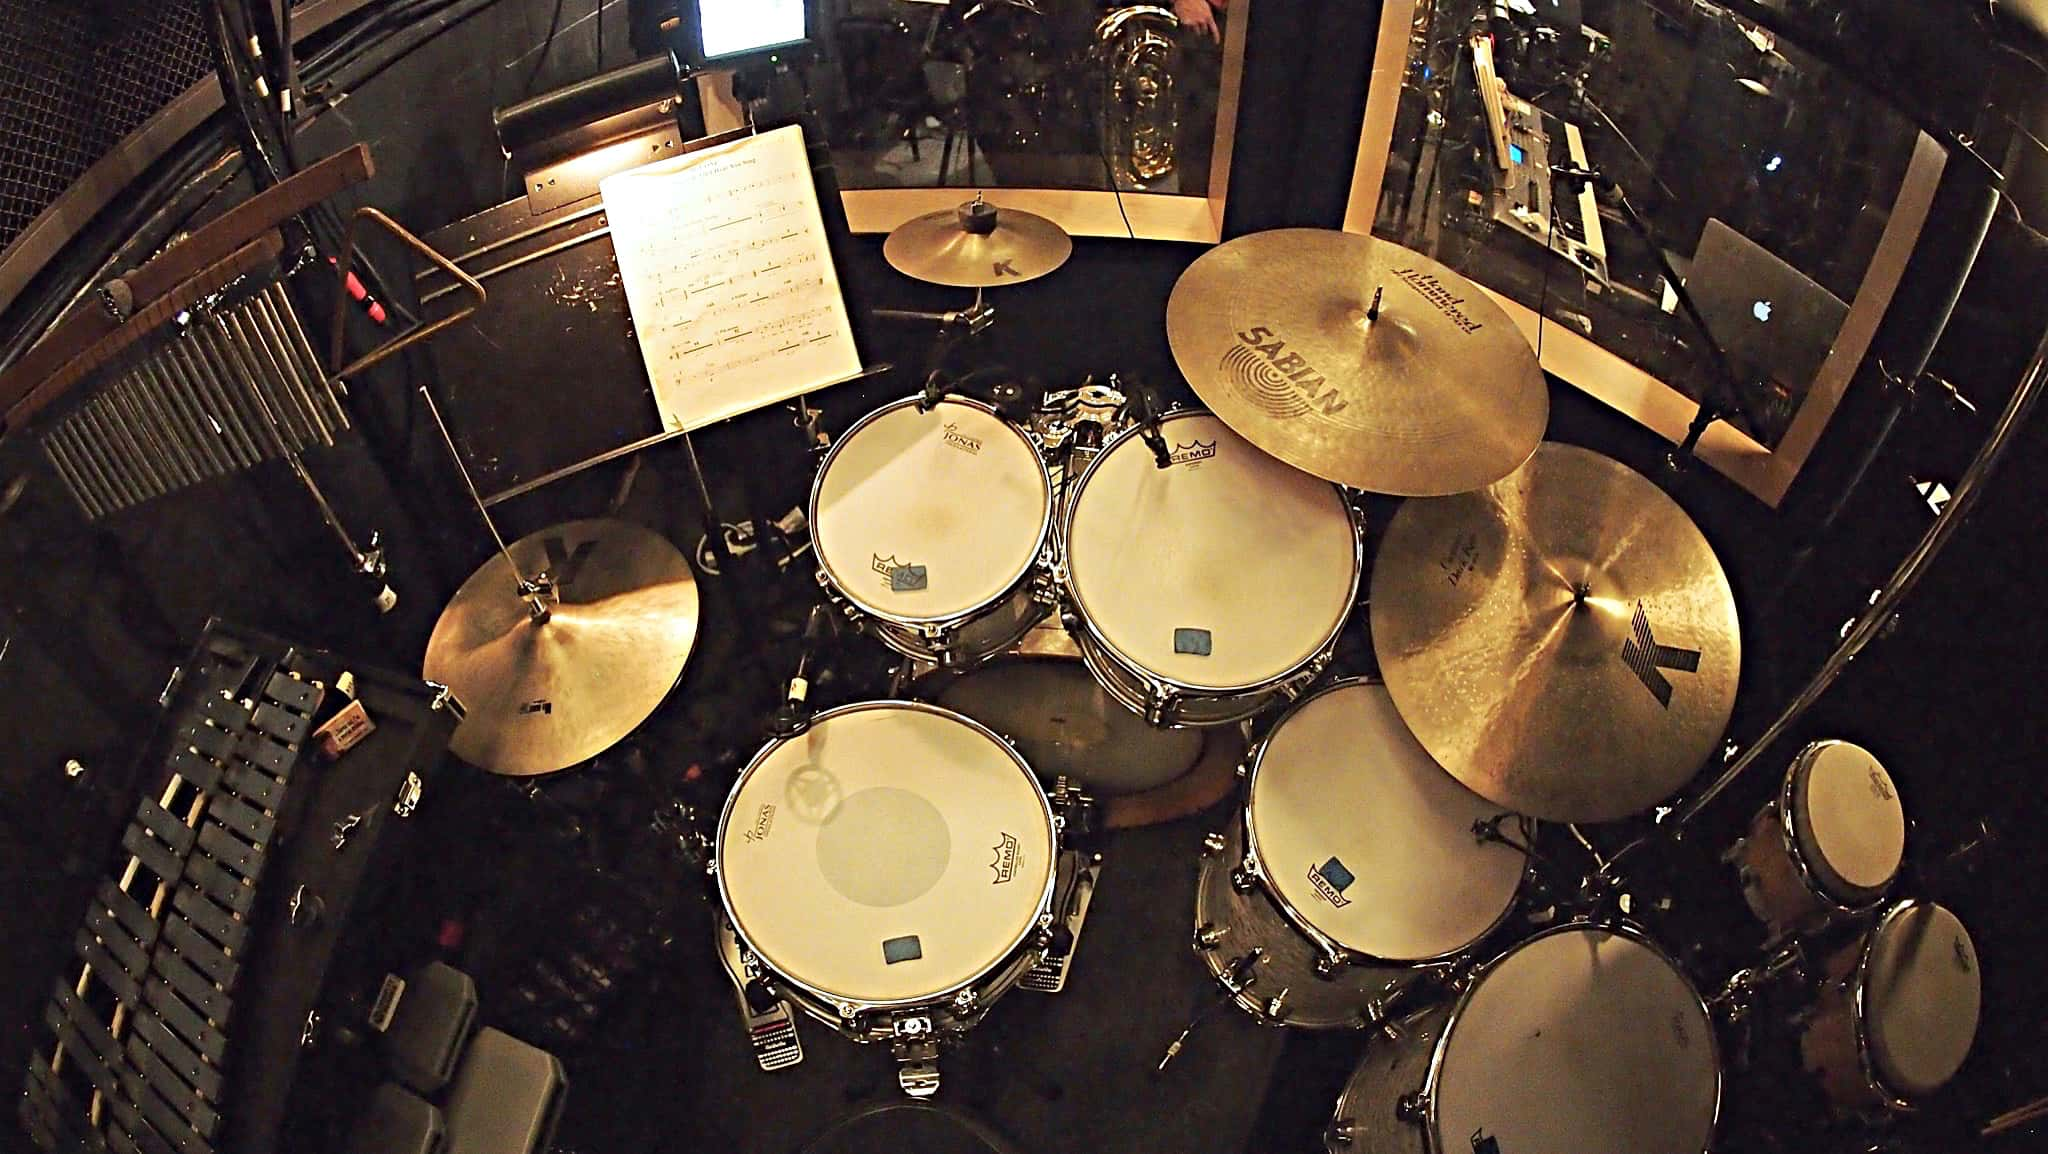 Aaron Nix's setup for the 2018 National Tour of Love Never Dies at the Paramount Theatre in Seattle, Washington.